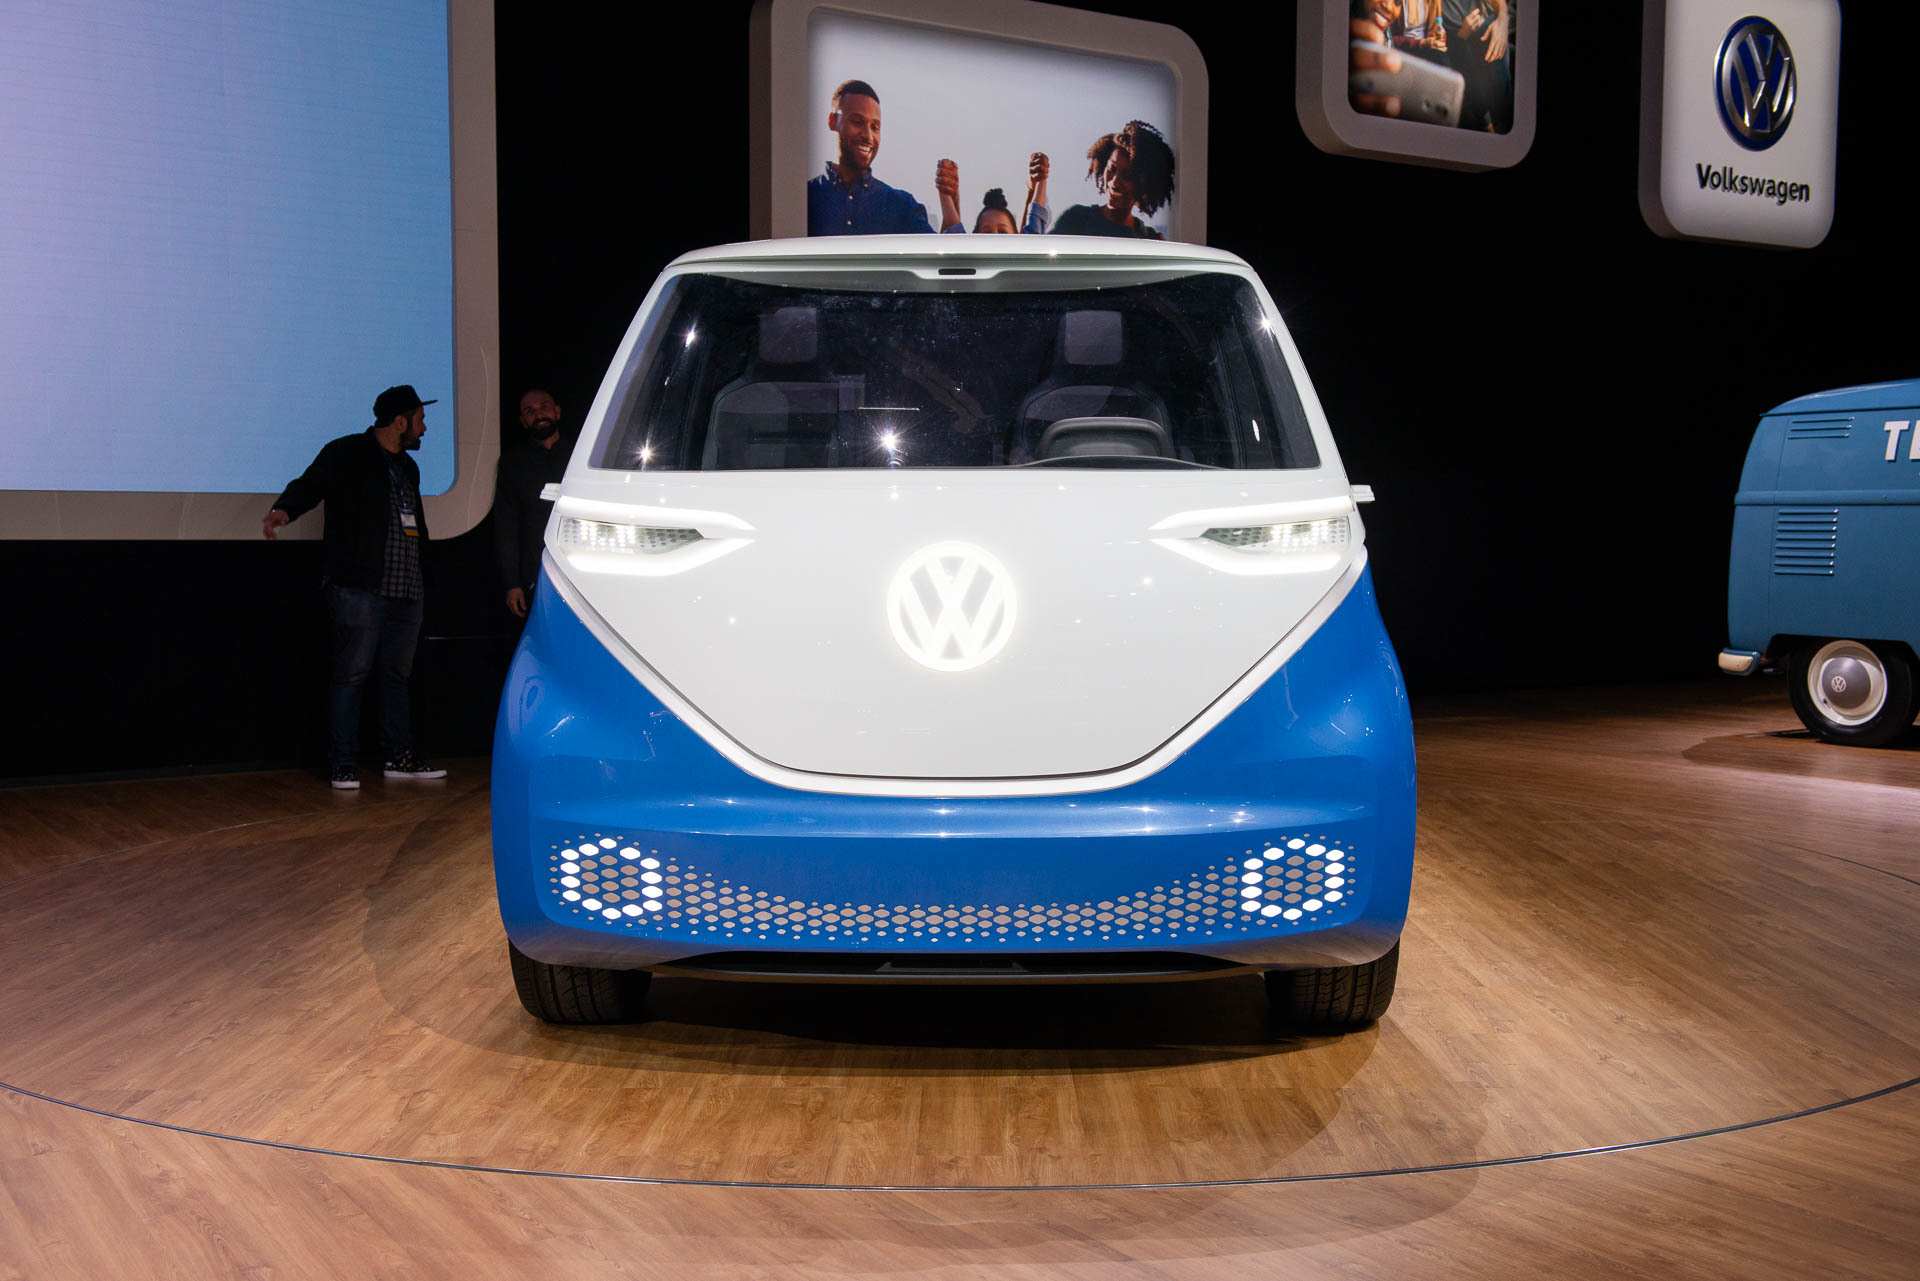 Volkswagen to change its name to Voltswagen in America  image